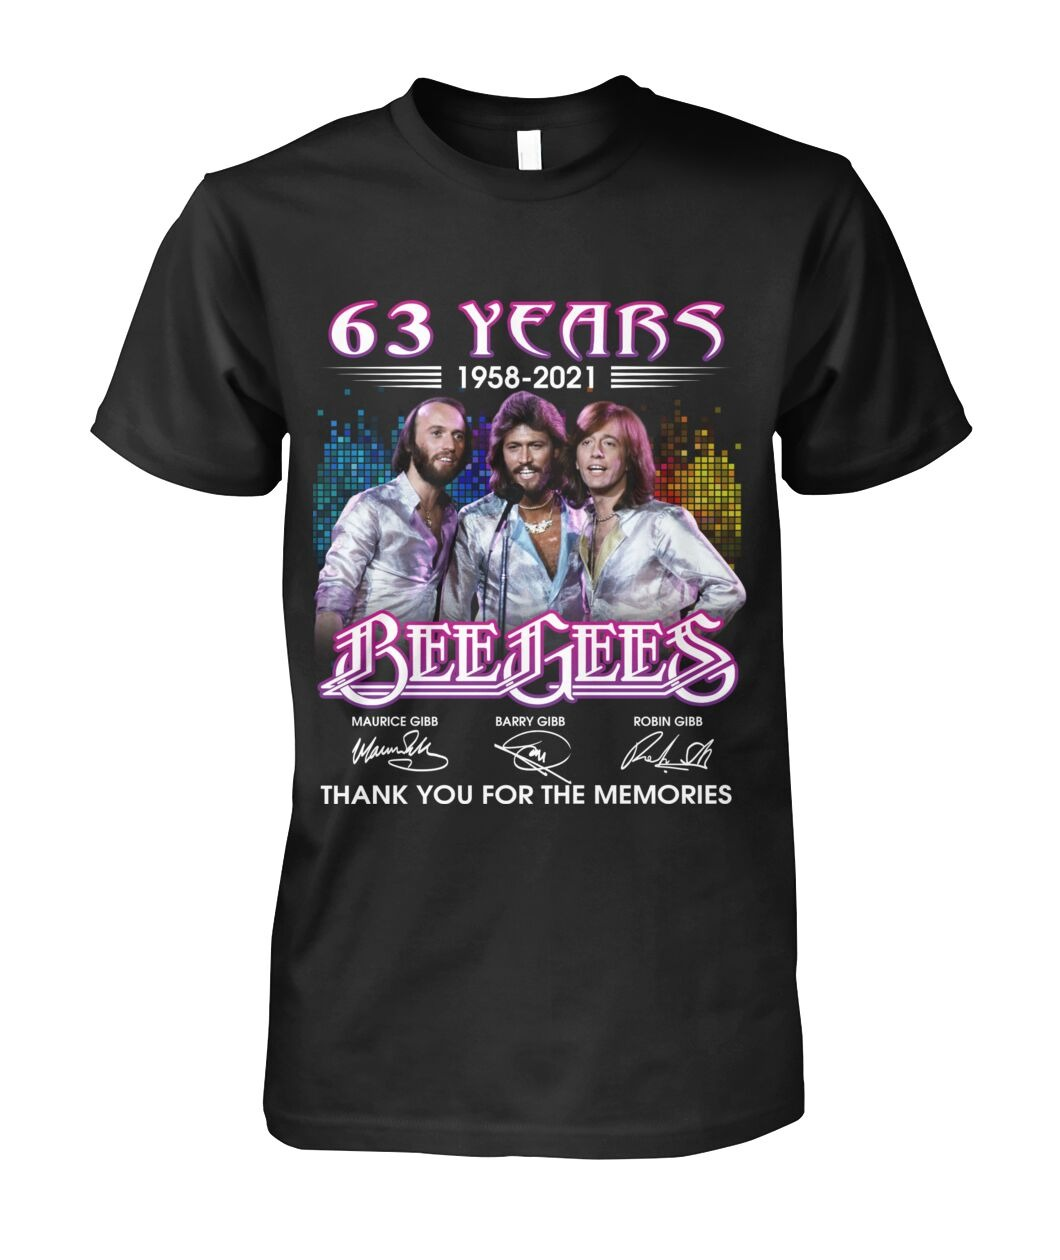 63 years 1958 2021 Bee Gees thank you for the memories shirt63 years 1958 2021 Bee Gees thank you for the memories shirt